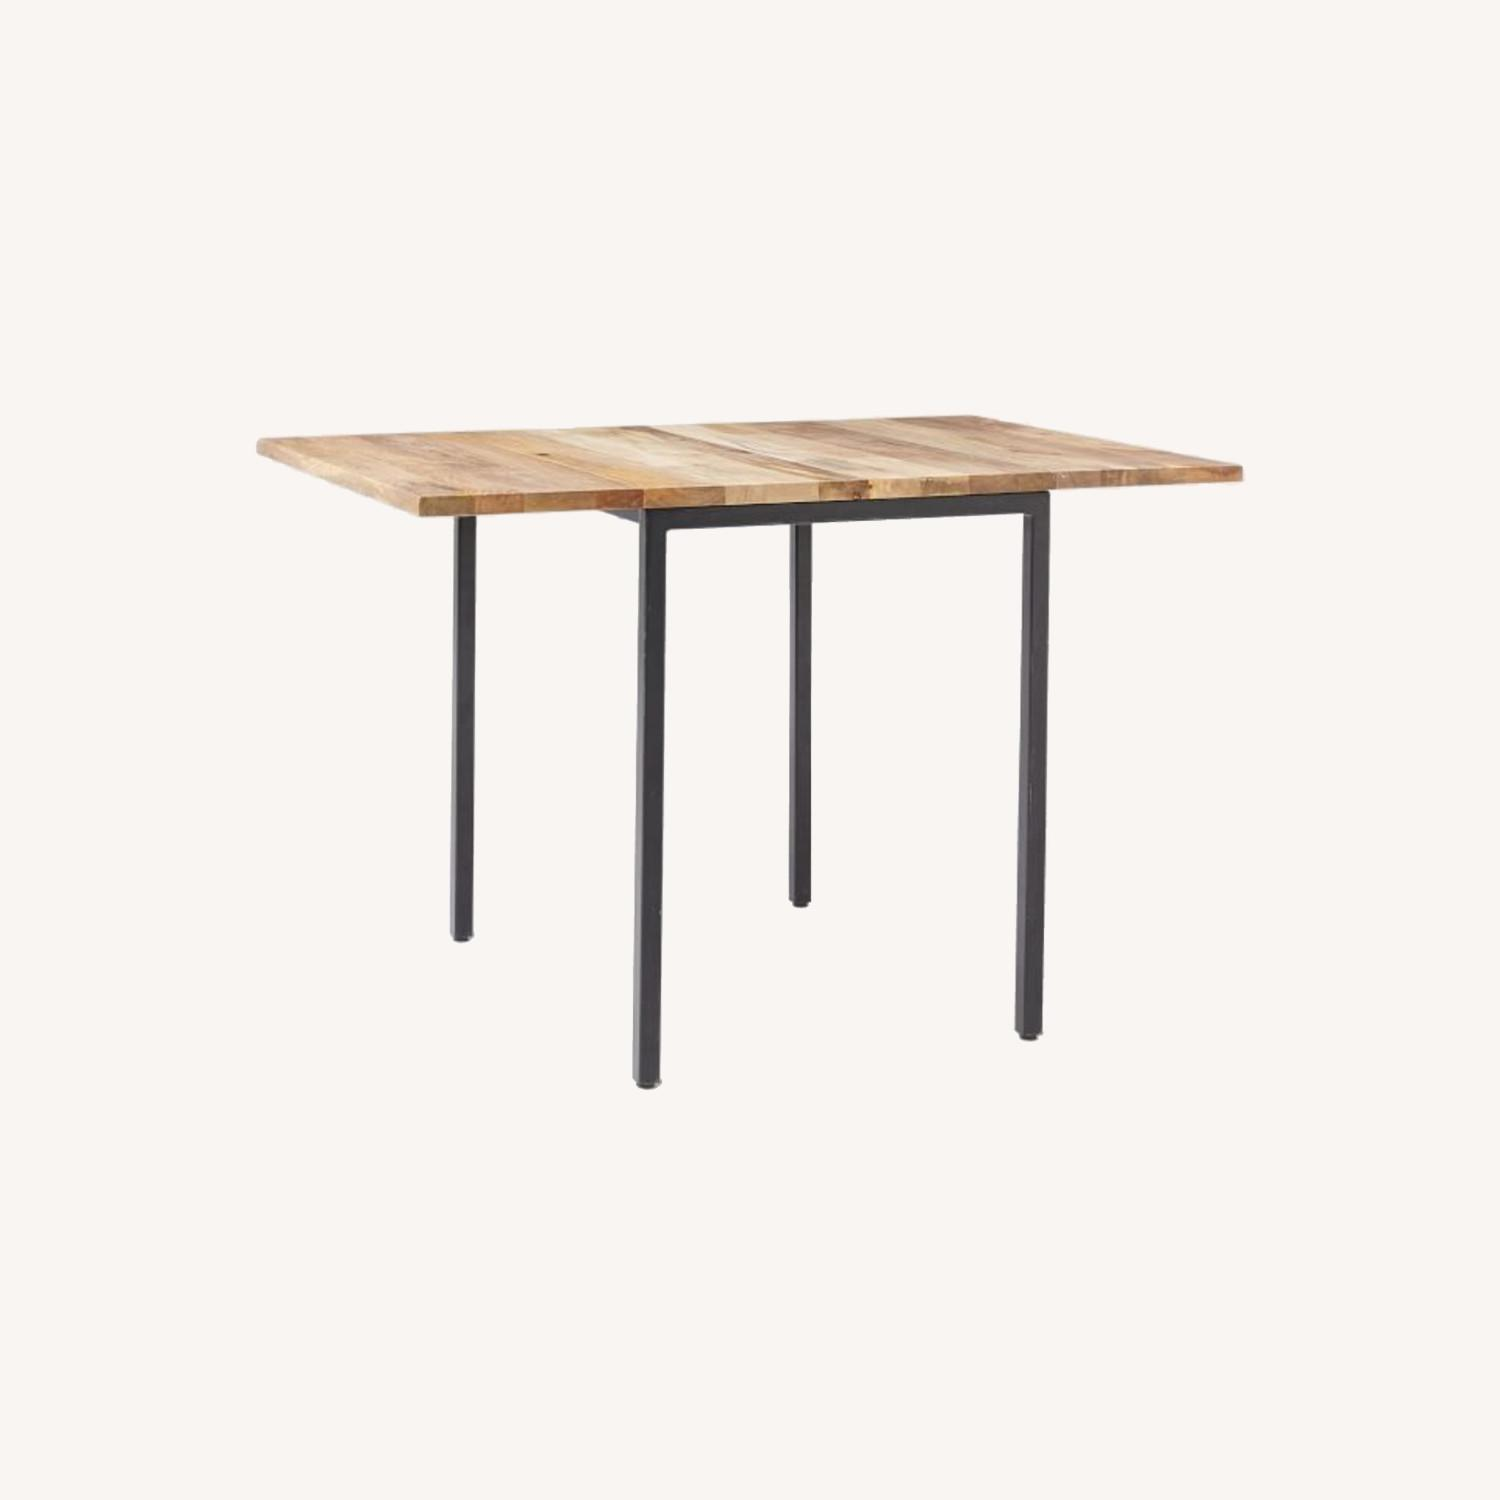 West Elm Box Frame Drop Leaf Dining Table - image-0